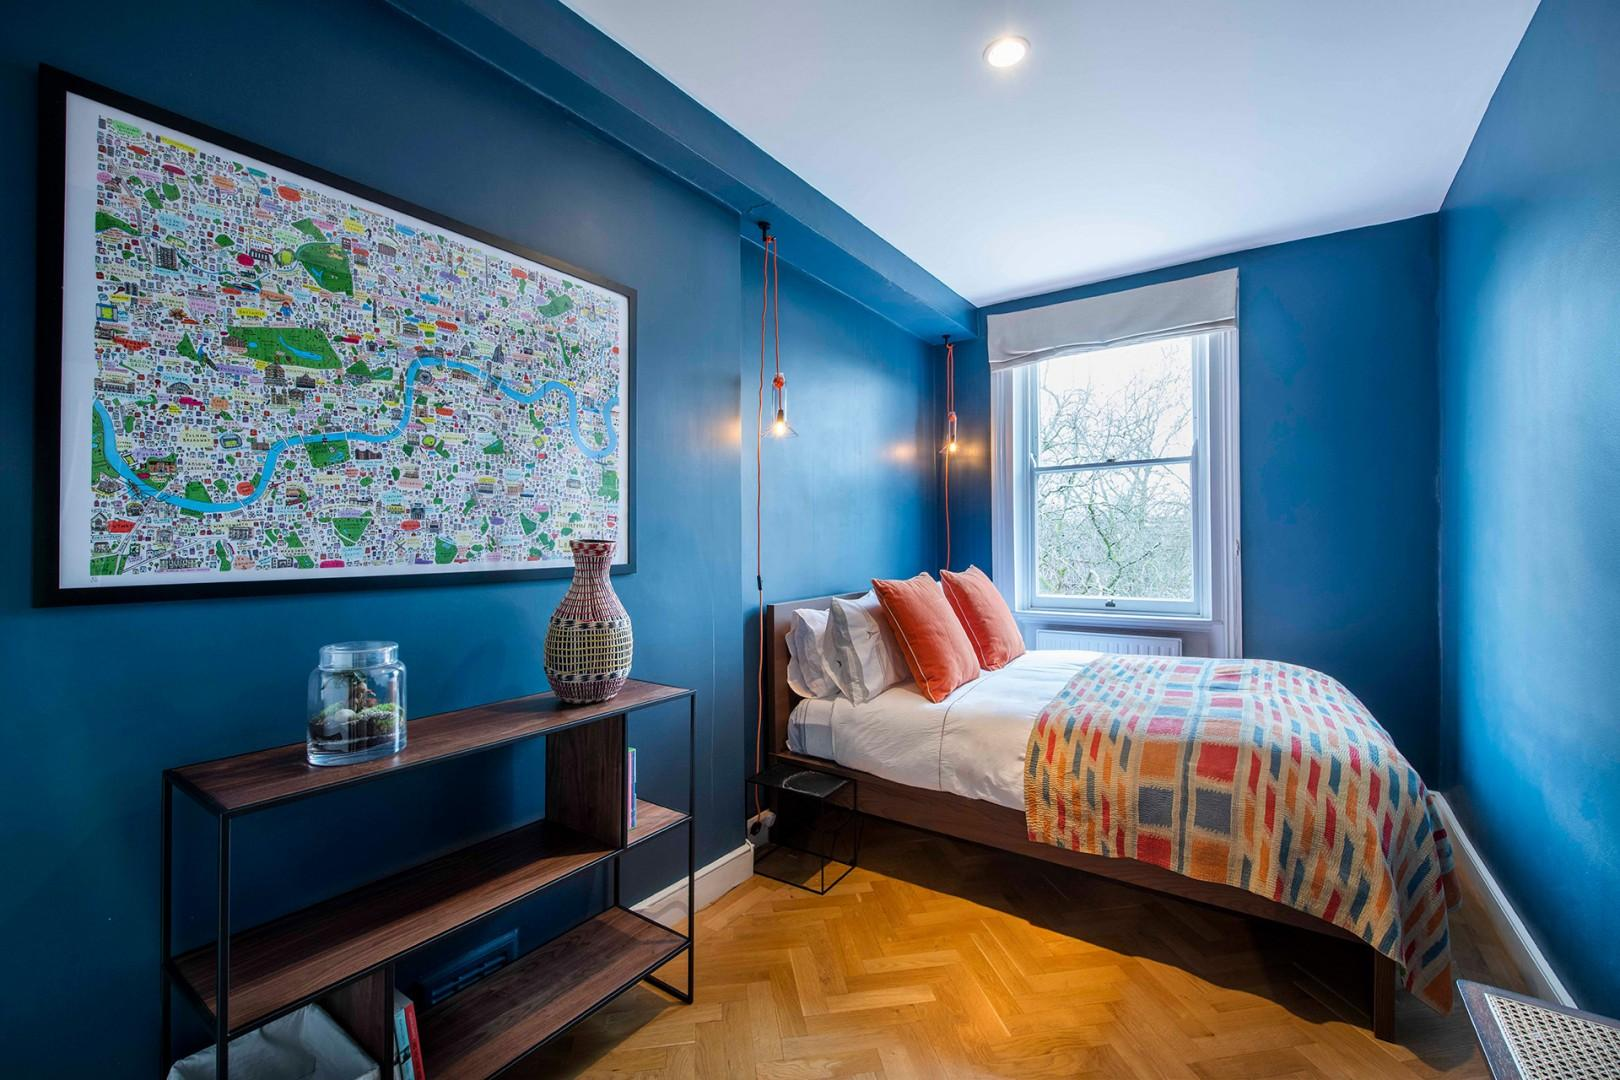 Bedroom 2 is a tranquil retreat in a soothing azure shade